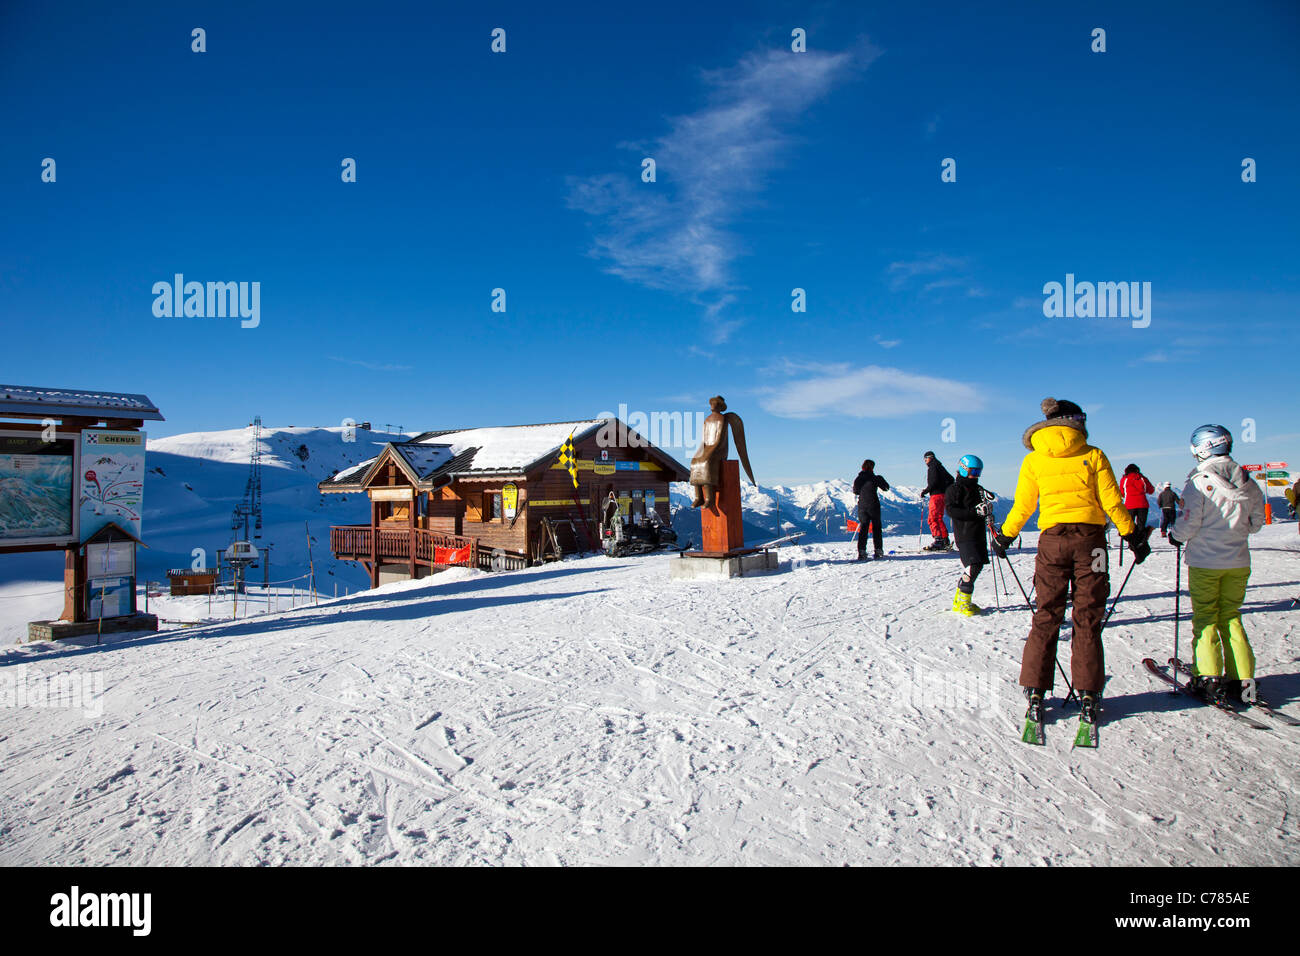 Skiers on piste at Courchevel 1850, France. - Stock Image